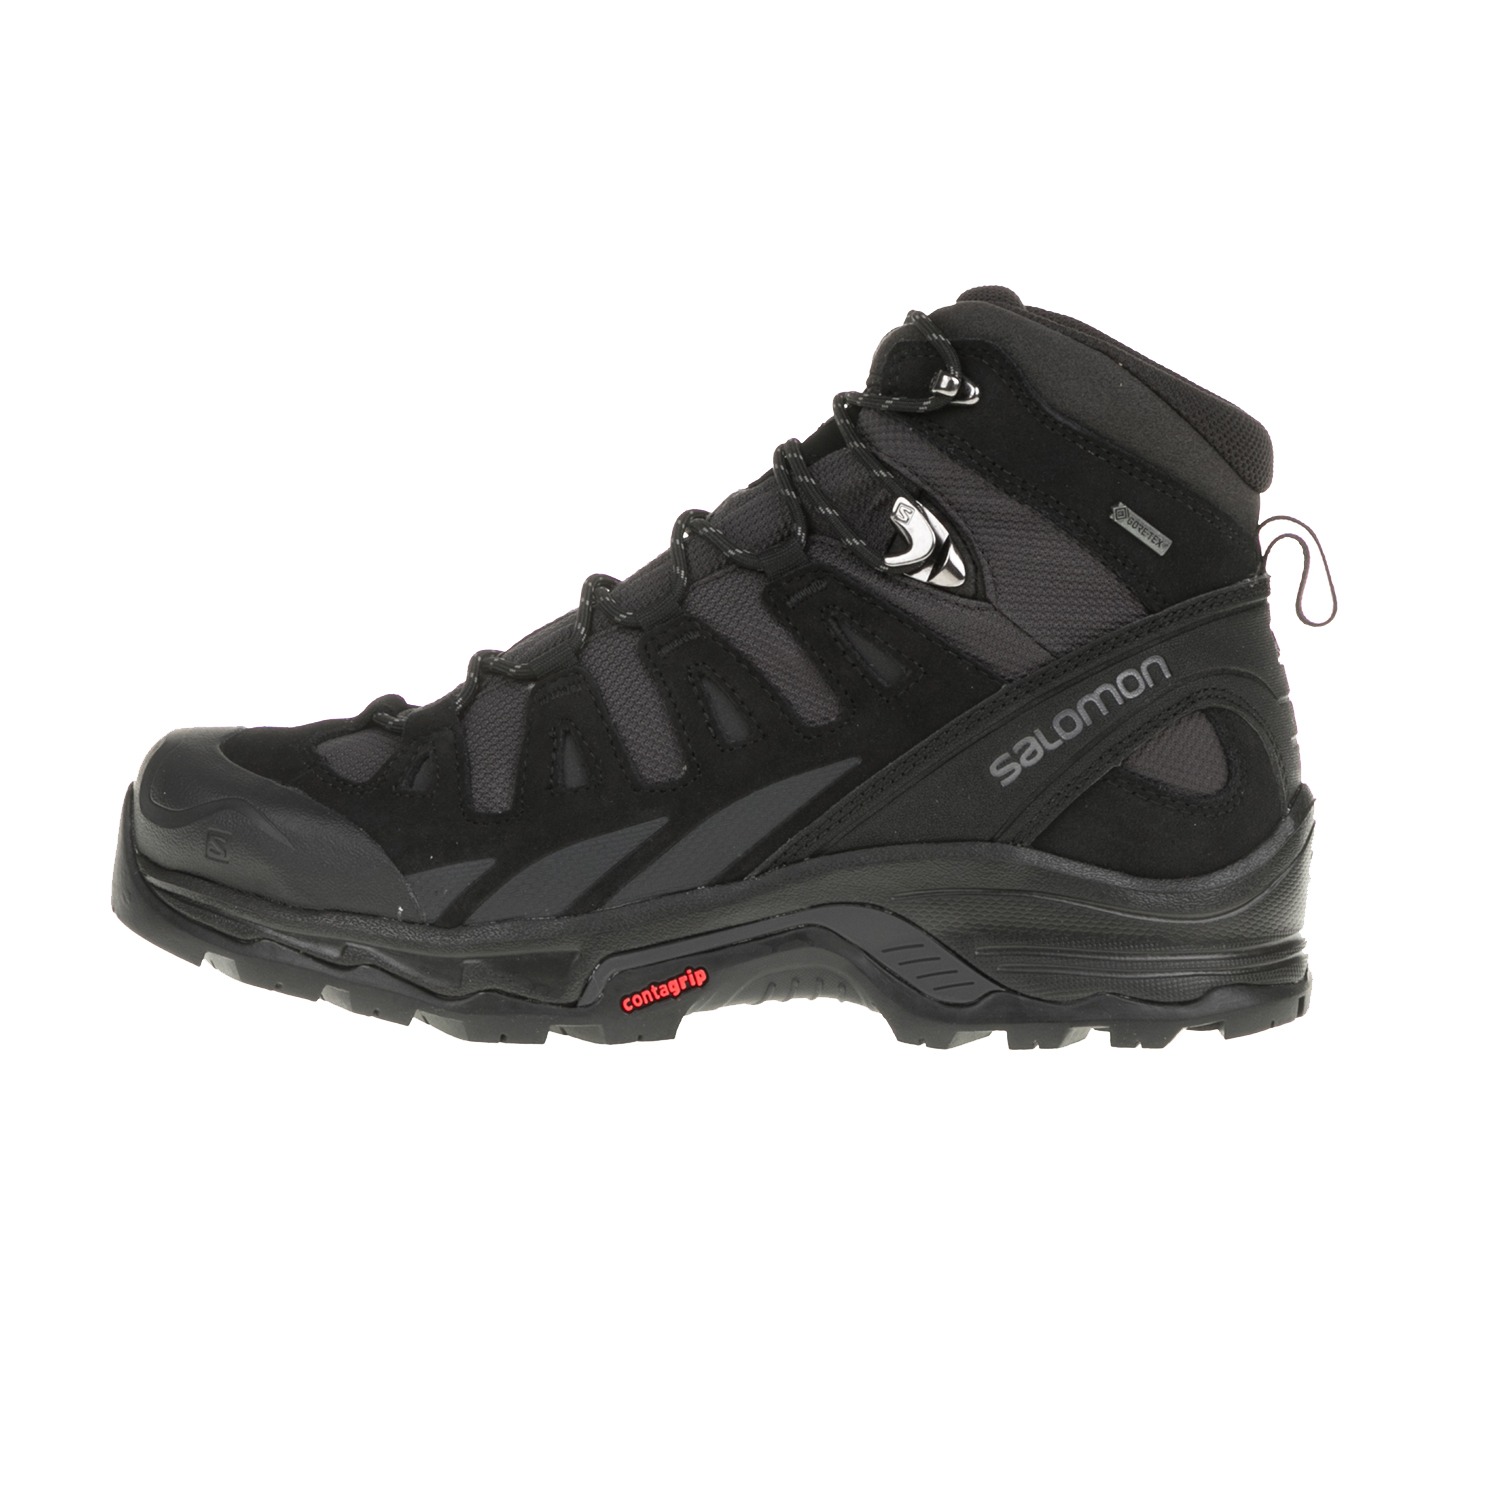 SALOMON – Ανδρικά μποτάκια BACKPACKING SHOES QUEST PRIME ανθρακί-μαύρα